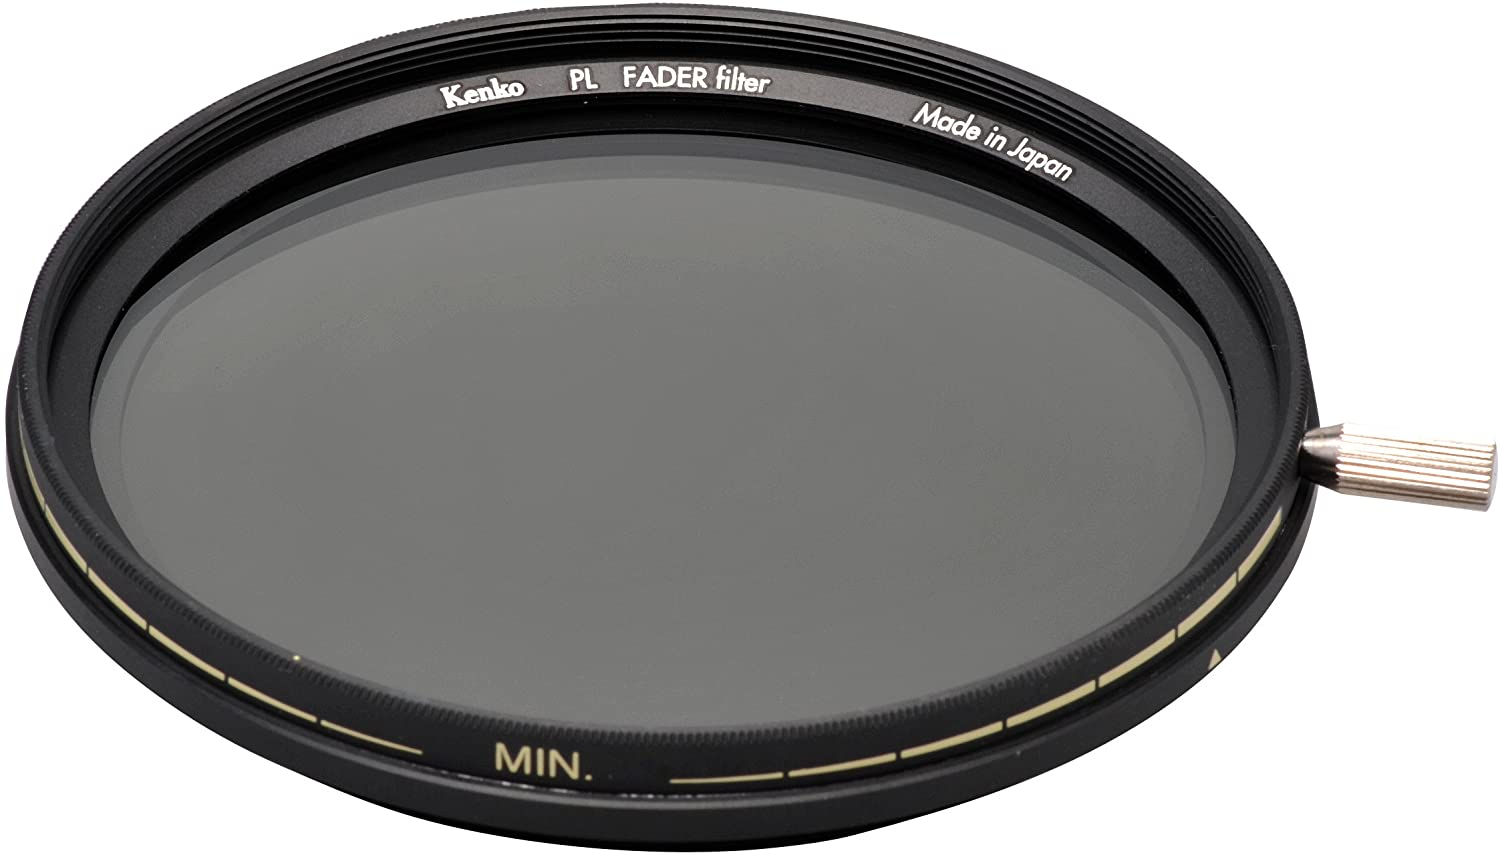 Kenko 55mm PL FADER Variable Neutral Density (ND3 to ND400) Camera Lens Filters